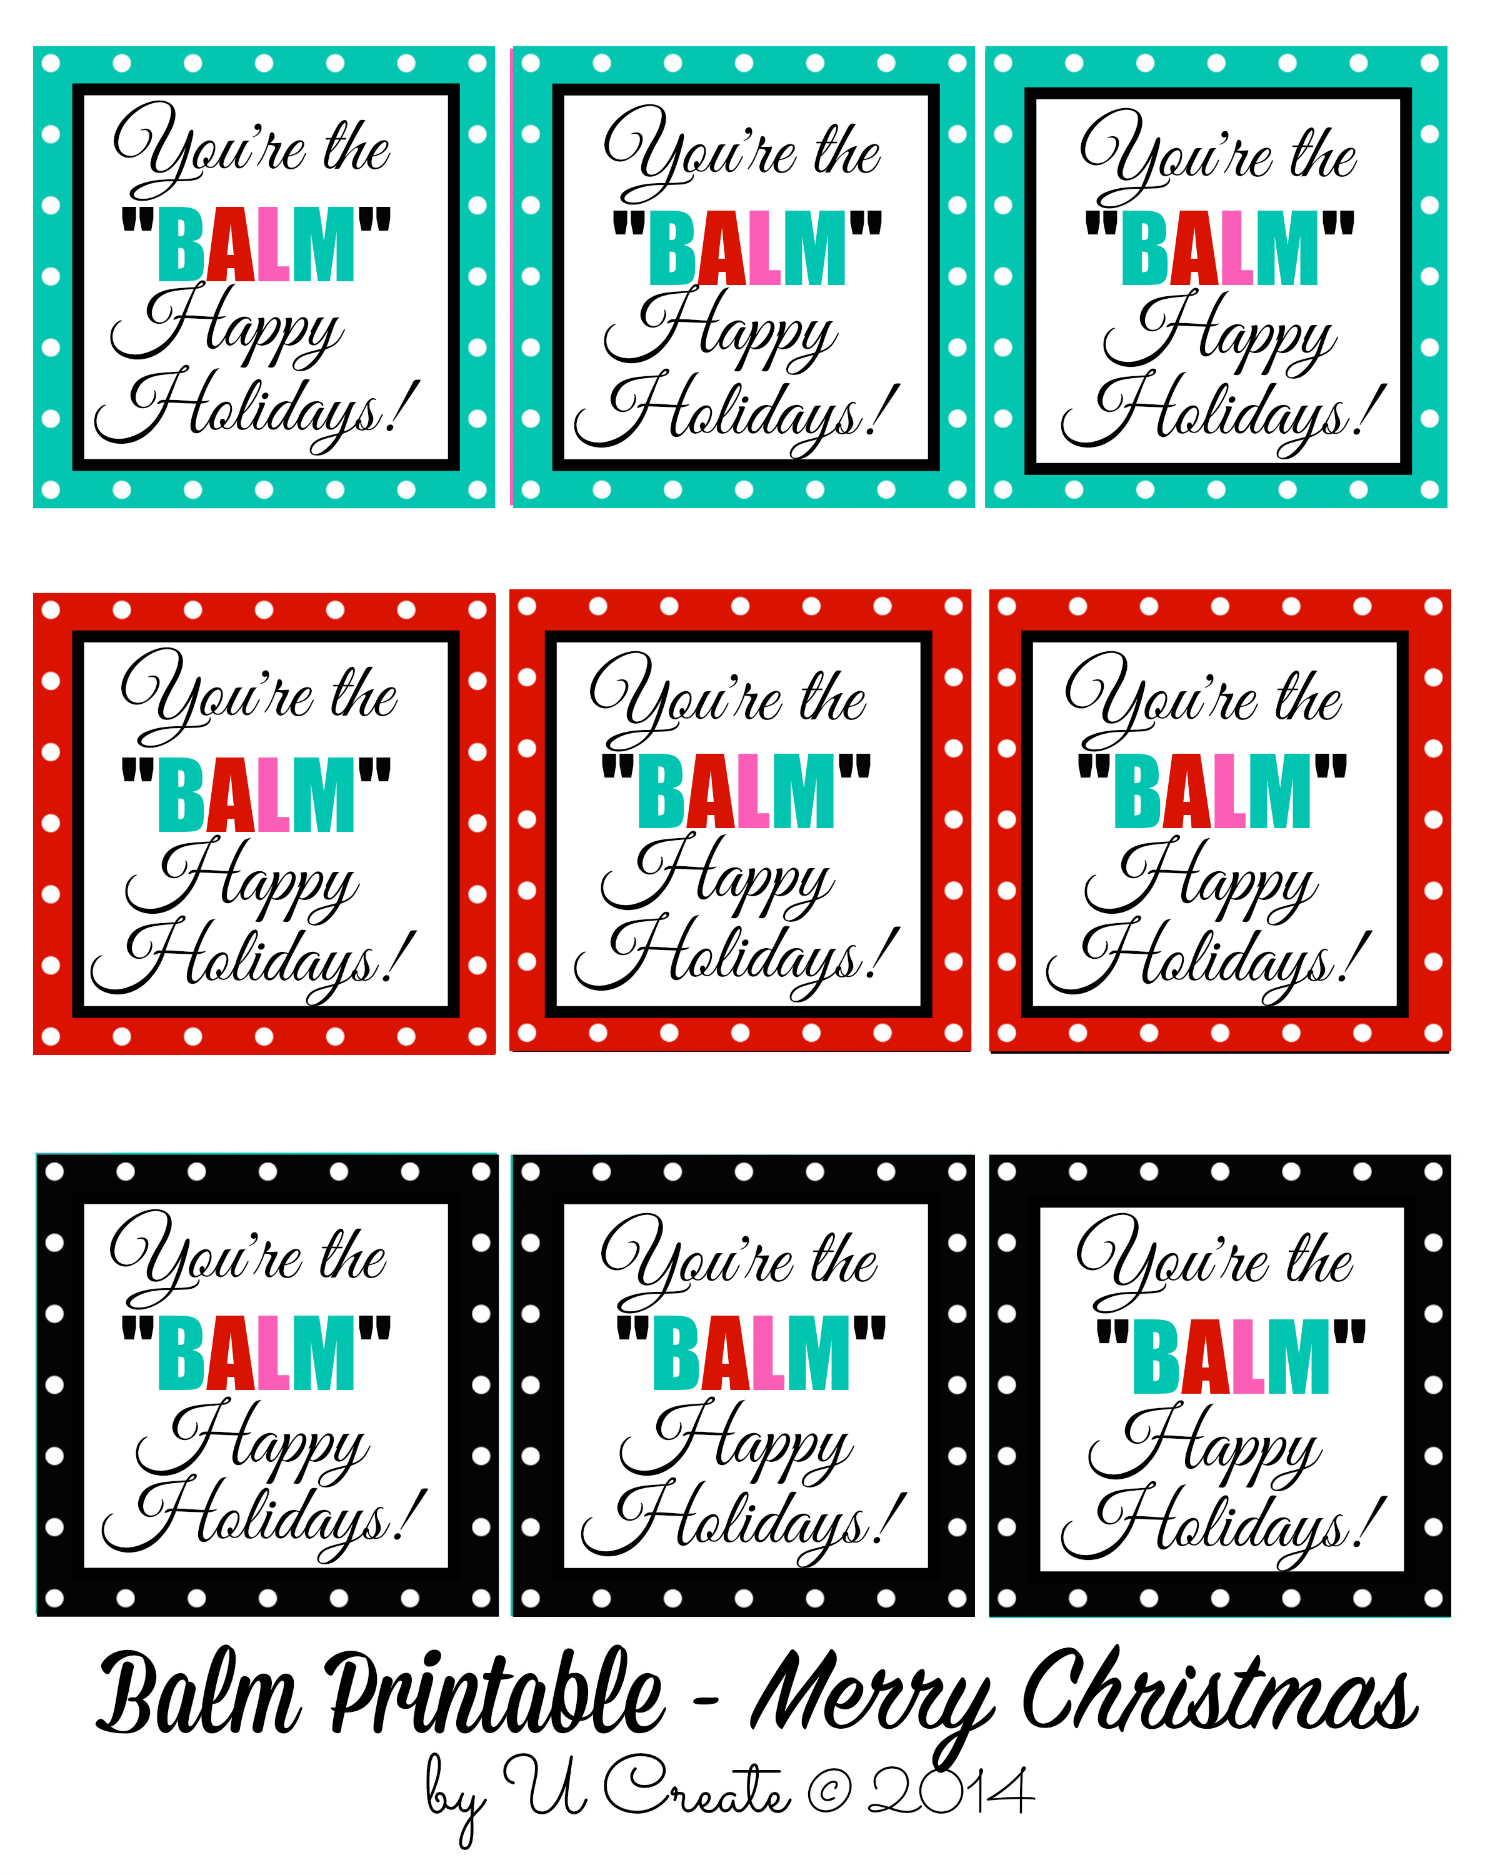 photograph regarding You're the Balm Free Printable identified as Youre the BALM - Xmas Printables - U Crank out